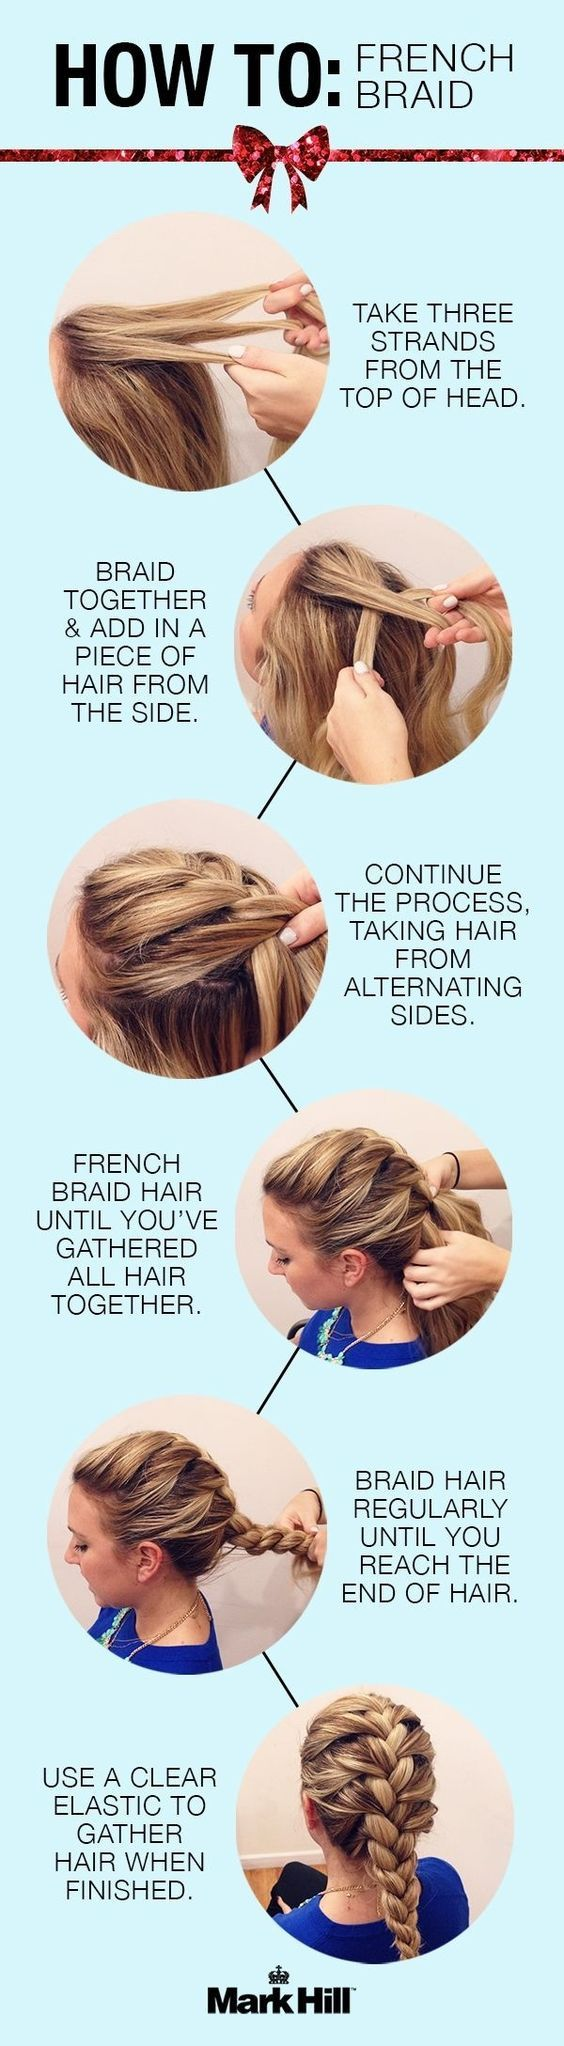 How to French Braided Hairstyles: Classic Braid Tutorial now if I could do my own :-):